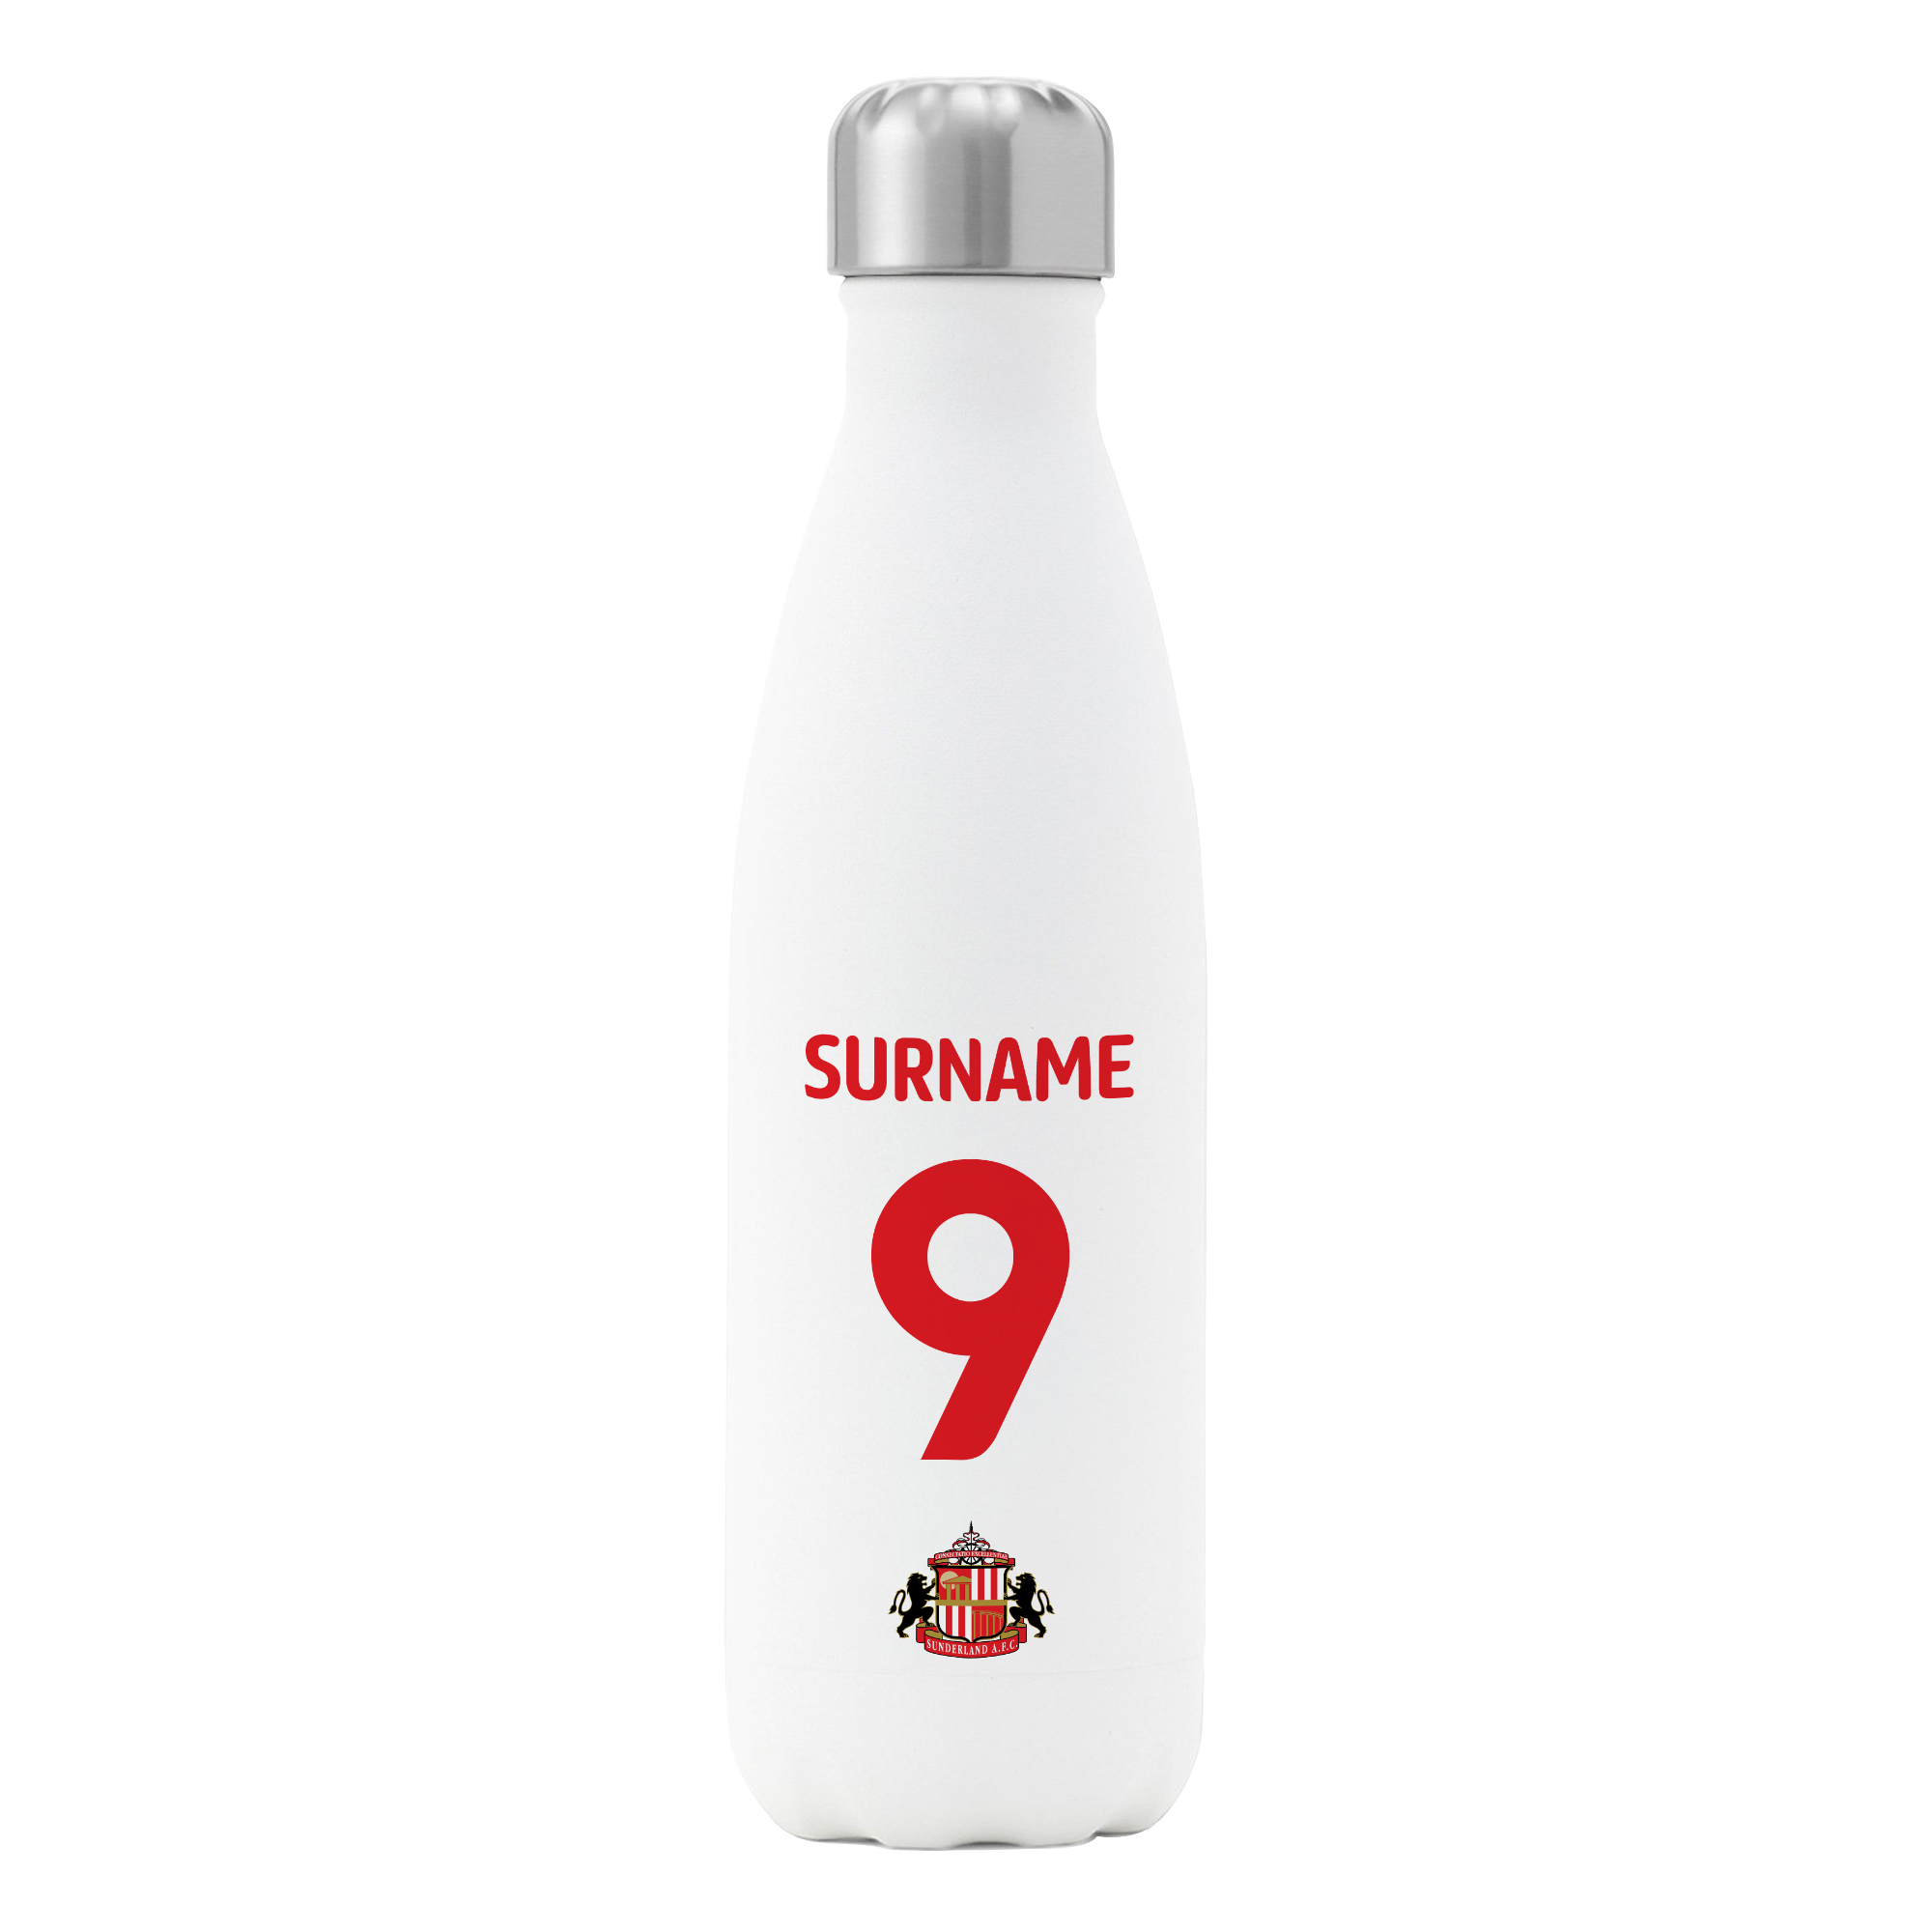 Sunderland AFC Back of Shirt Insulated Water Bottle - White